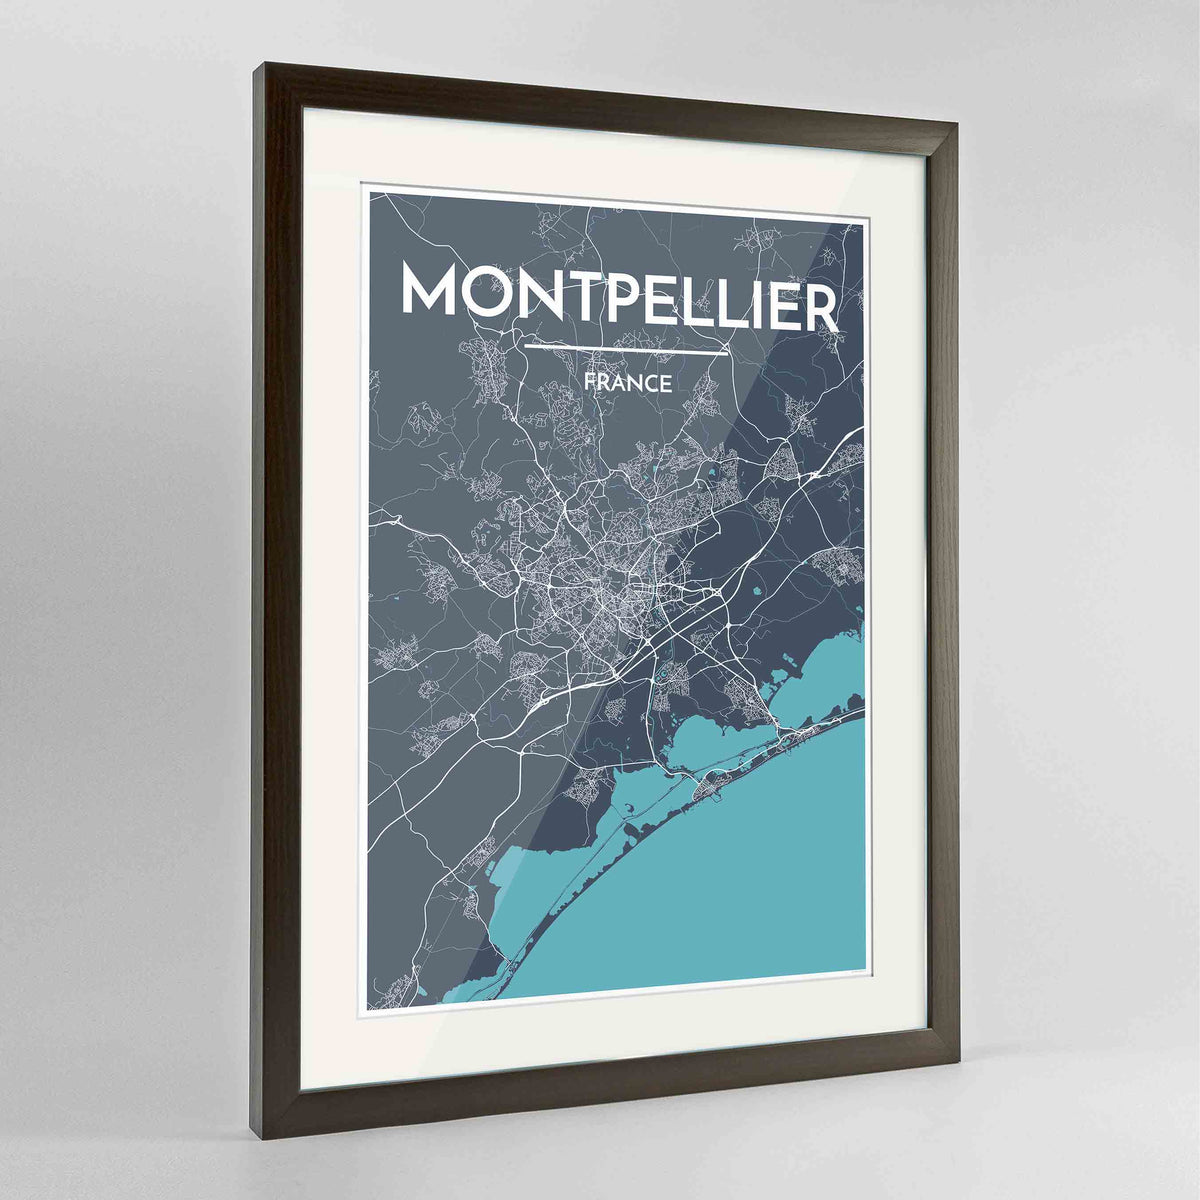 "Framed Montpellier Map Art Print 24x36"" Contemporary Walnut frame Point Two Design Group"